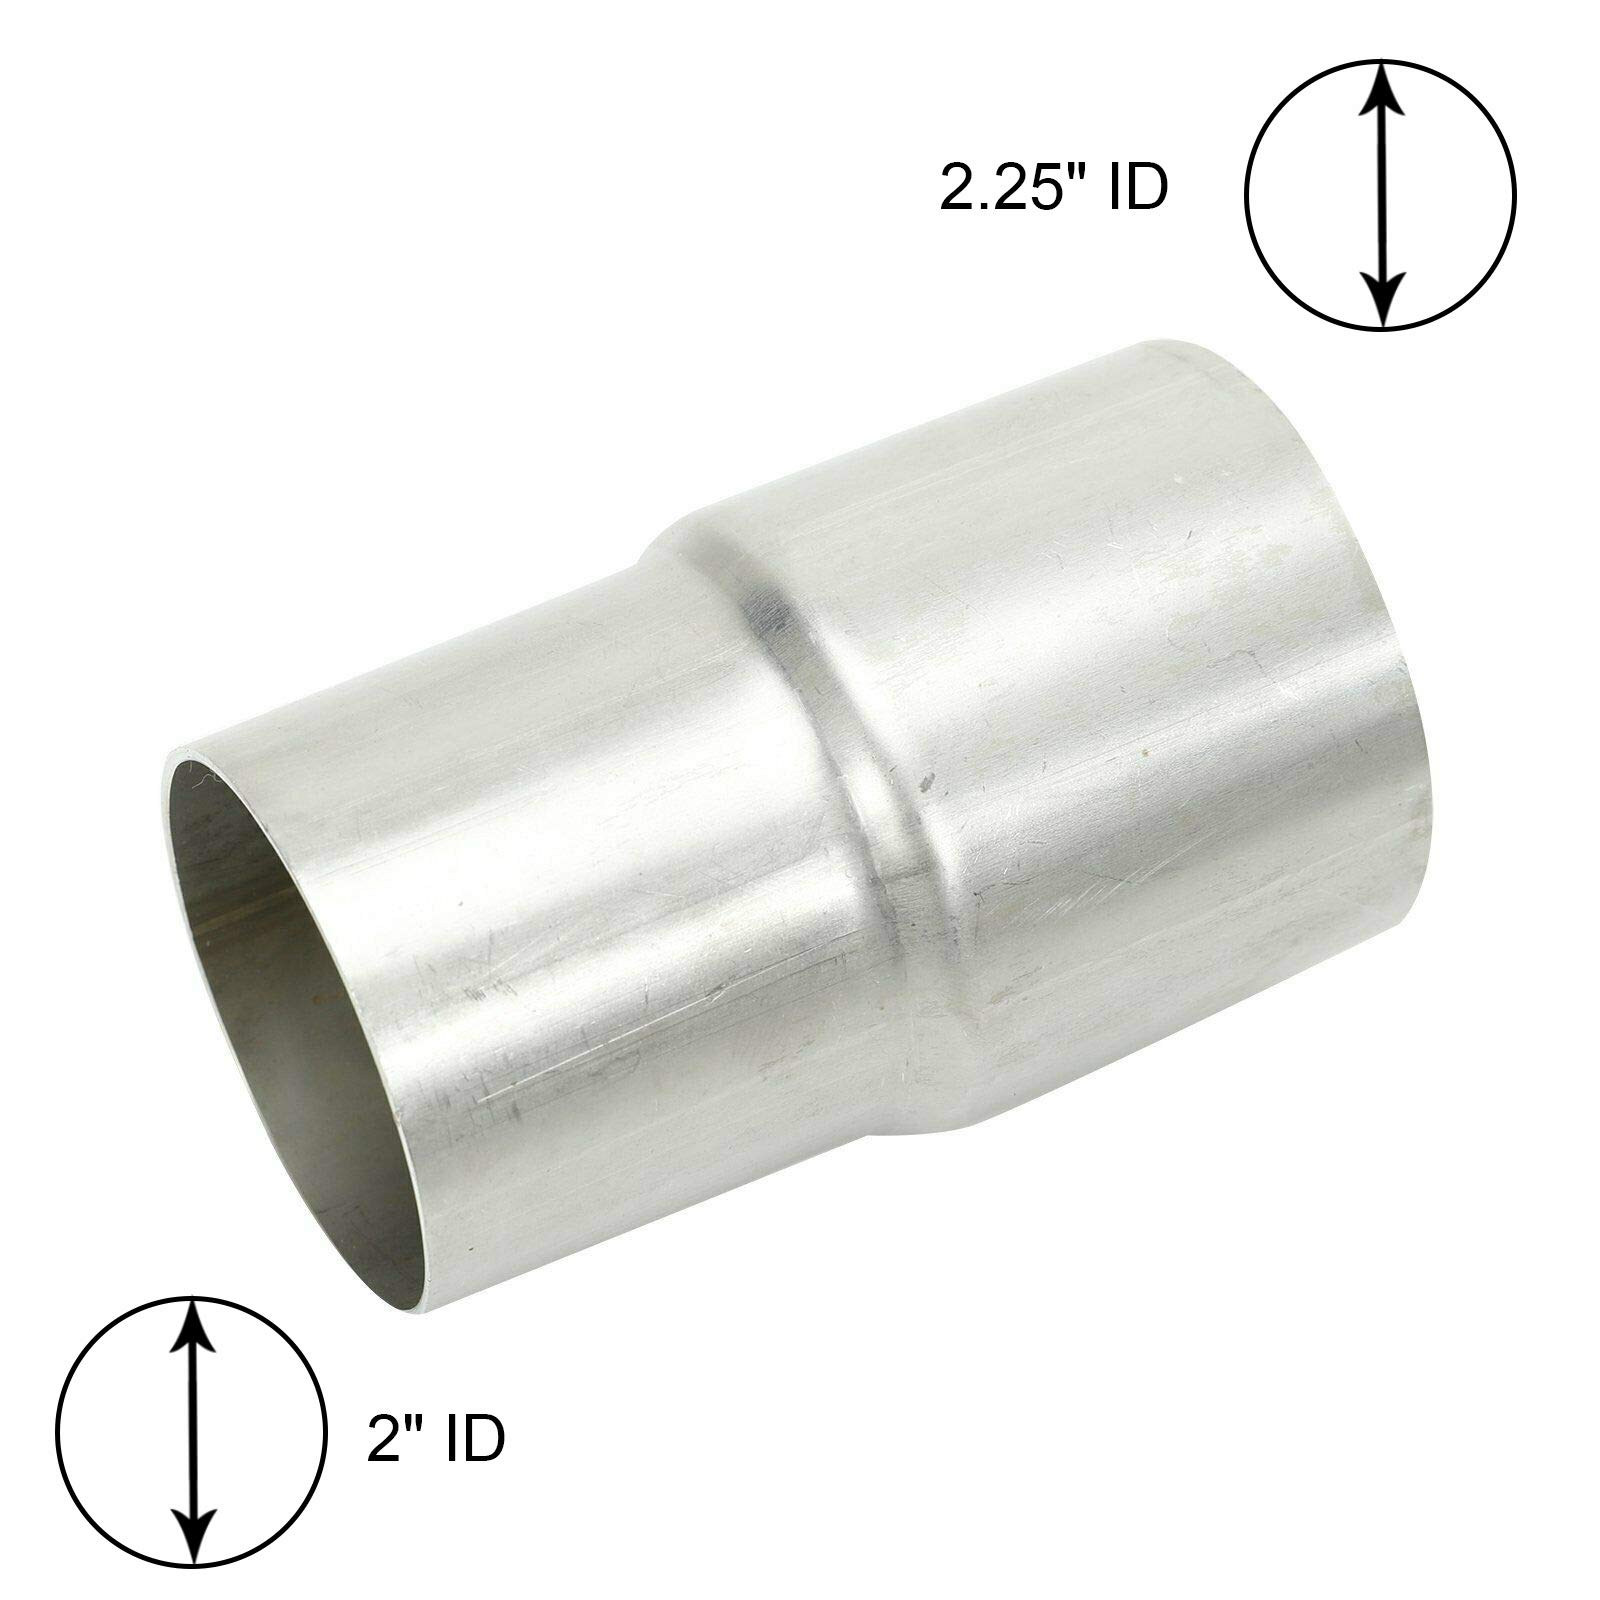 """BETTERCLOUD 2"""" ID to 2.25"""" ID Exhaust Pipe to Pipe Adapter Reducer"""